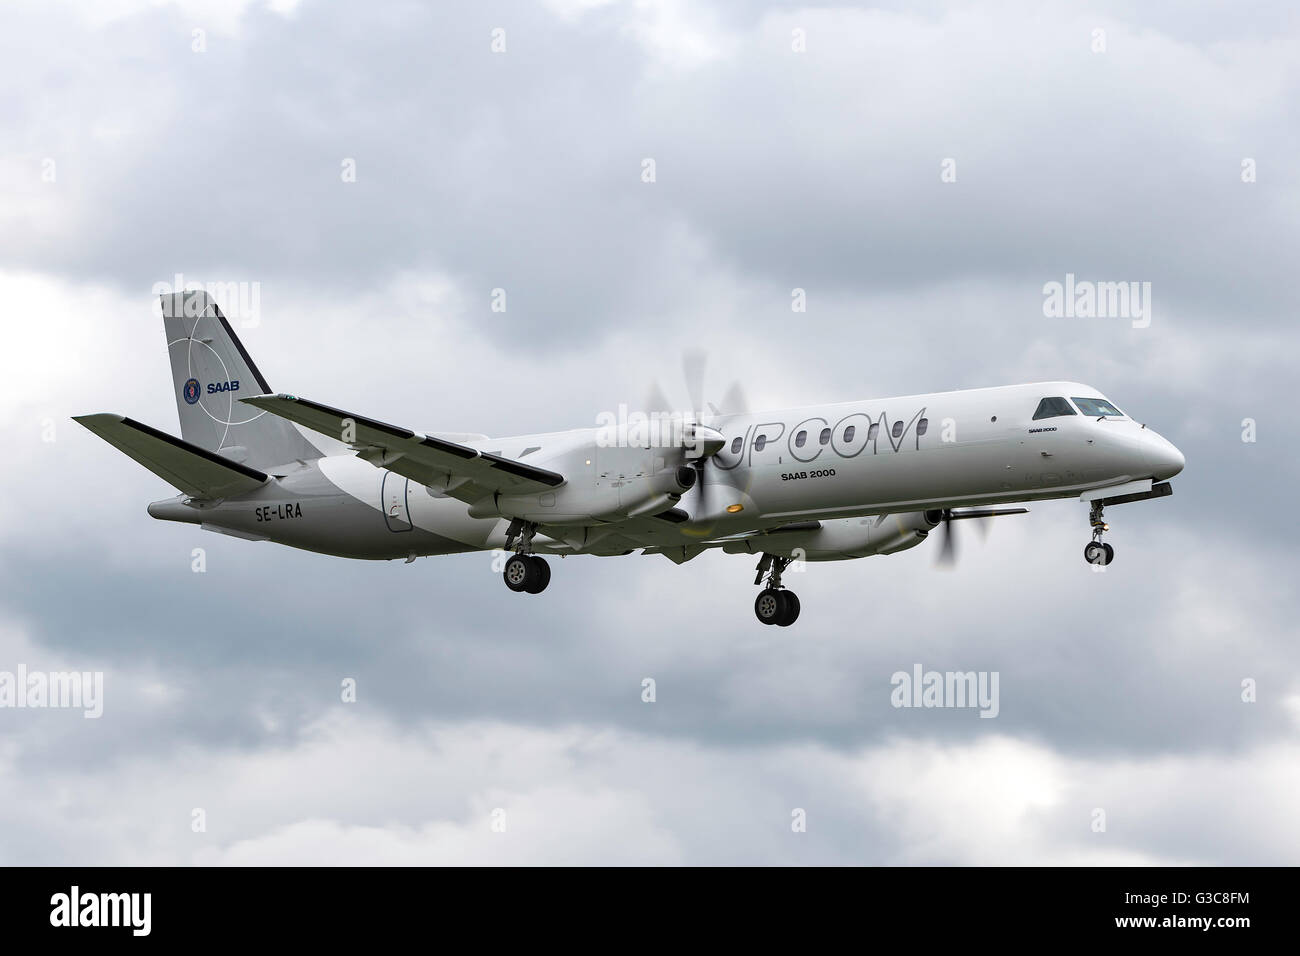 Saab 2000 SE-LRA twin-engined high-speed turboprop airliner built by Saab. - Stock Image